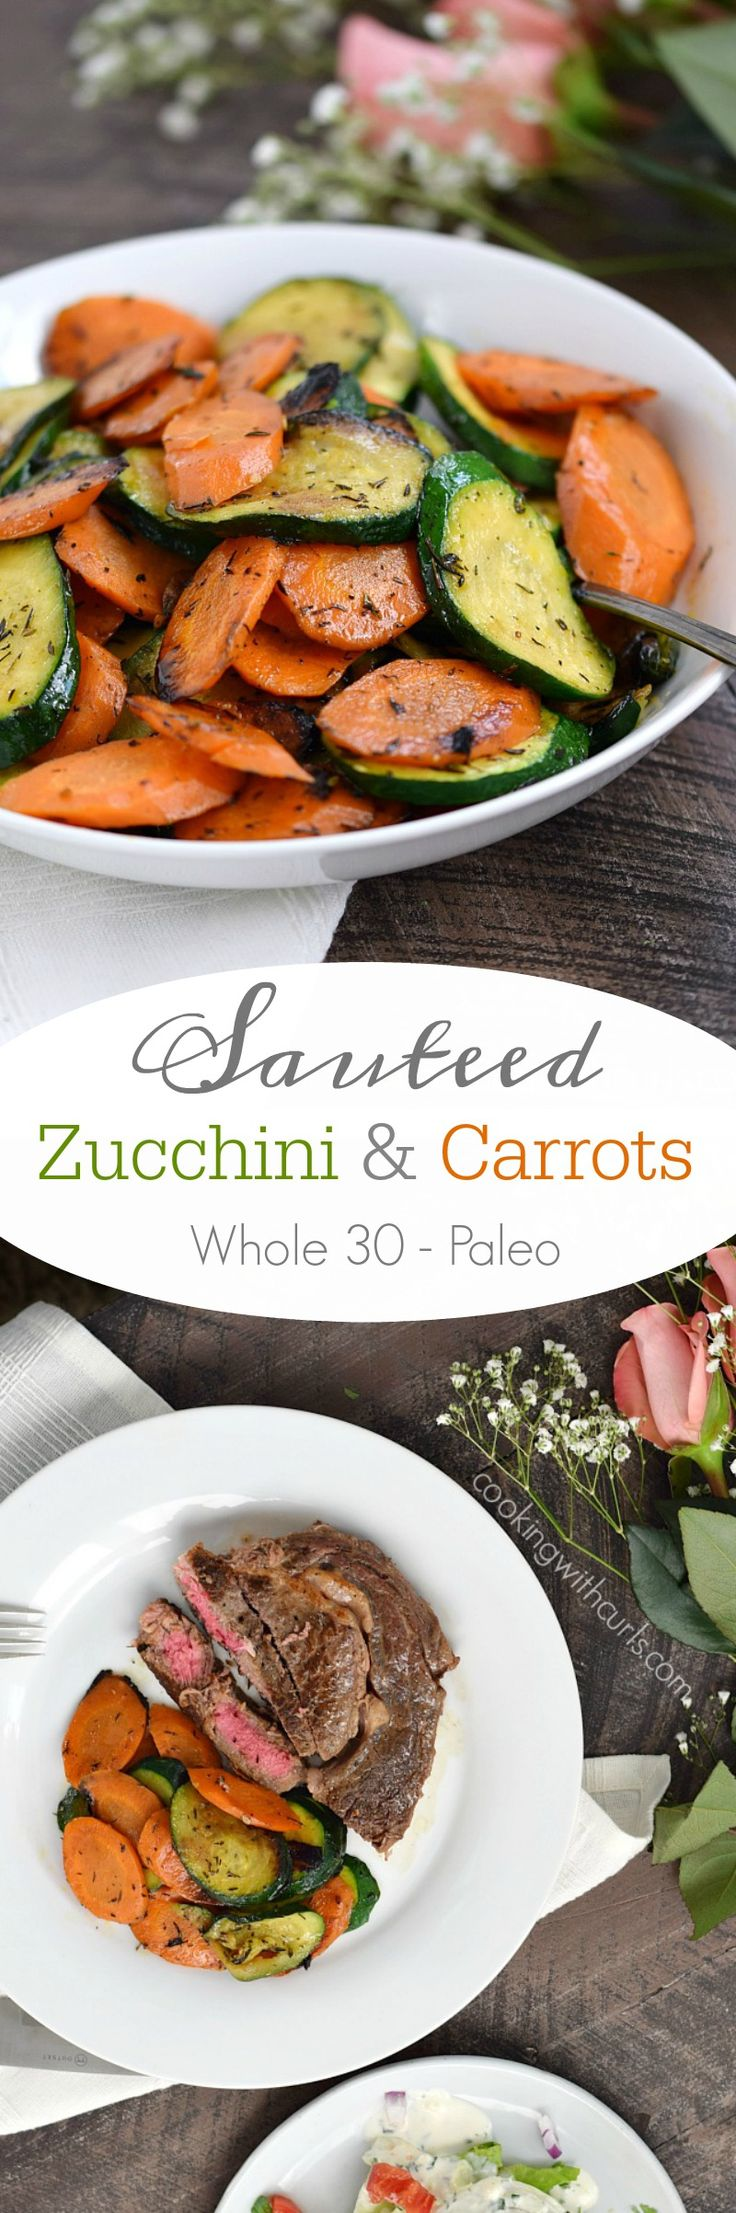 These Sauteed Zucchini and Carrots are super easy to prepare, and make the perfect side dish along side seafood, steaks, and chicken | cookingwithcurls.com